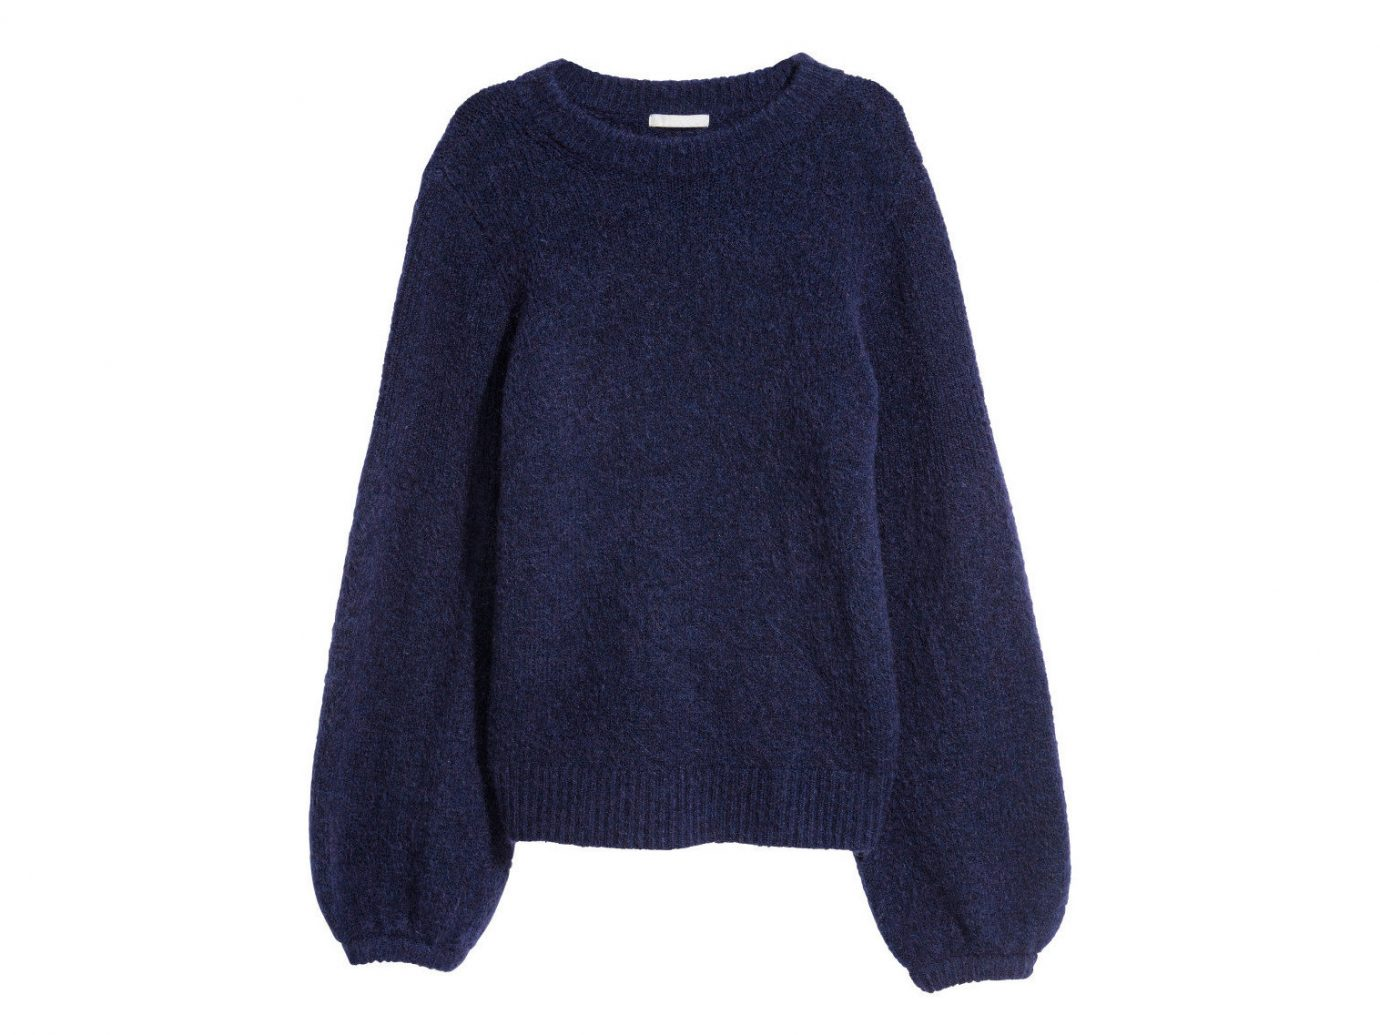 Style + Design Travel Shop clothing woolen sweater sleeve product neck electric blue